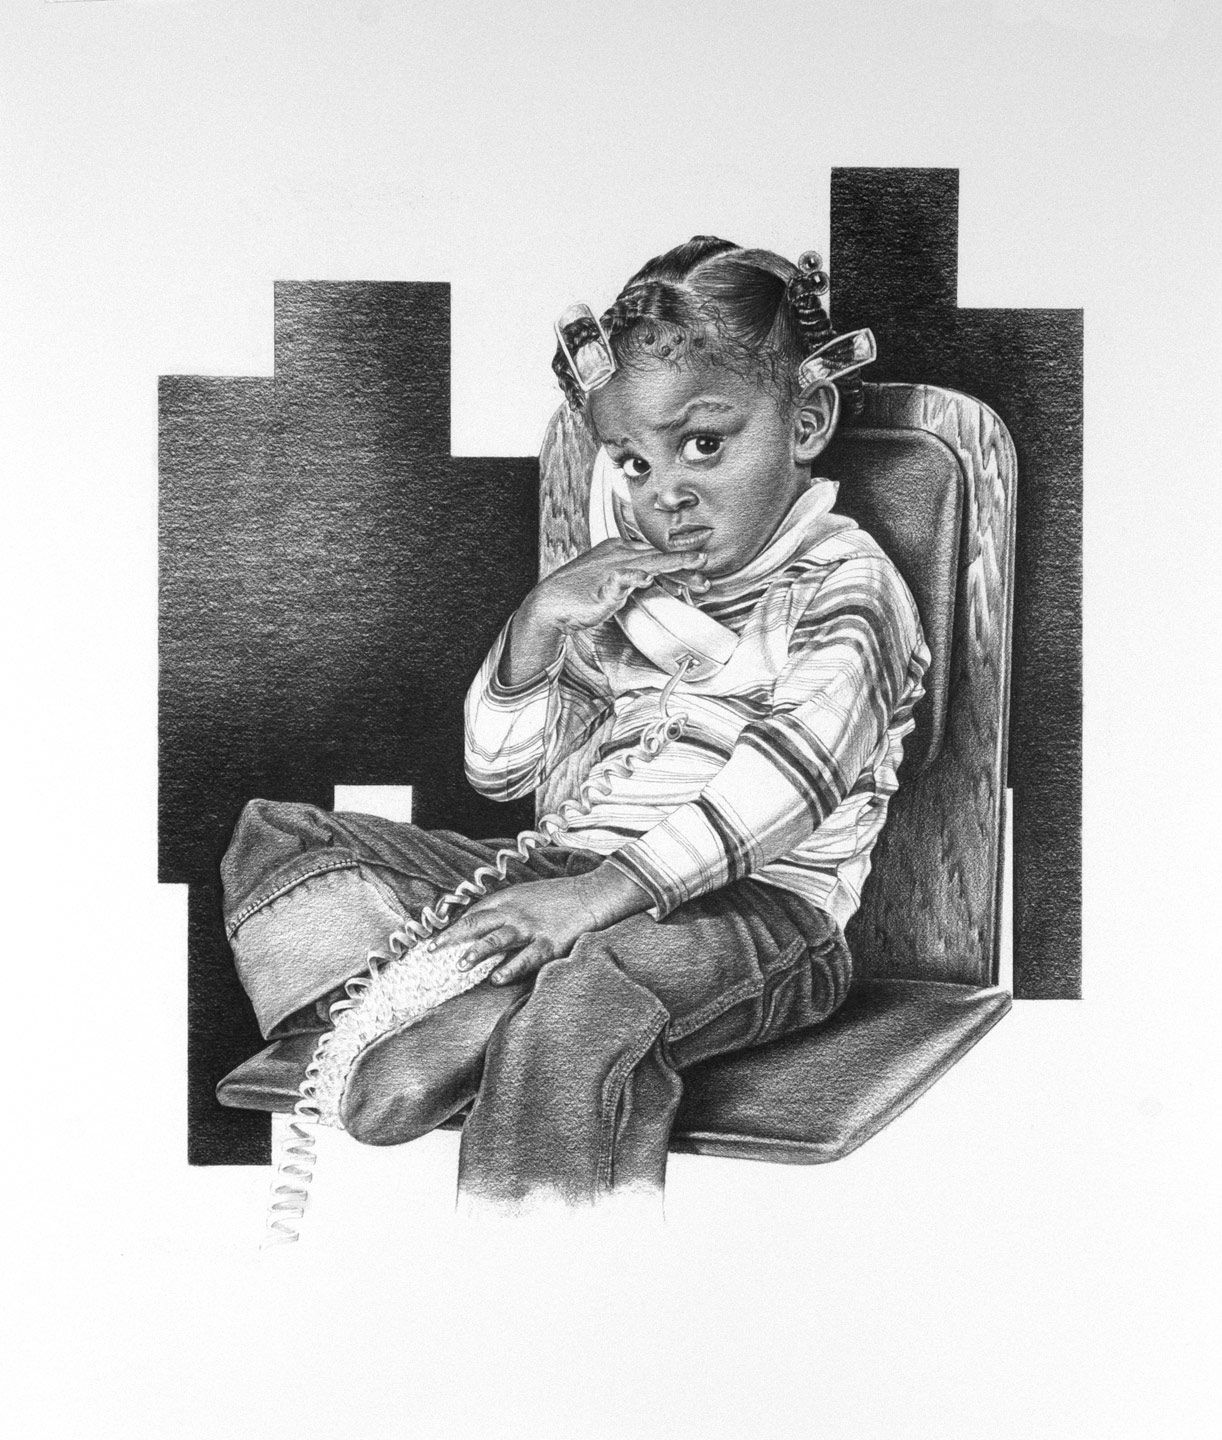 Just got caught pencil drawing by master pencil artist john nelson famous black artists